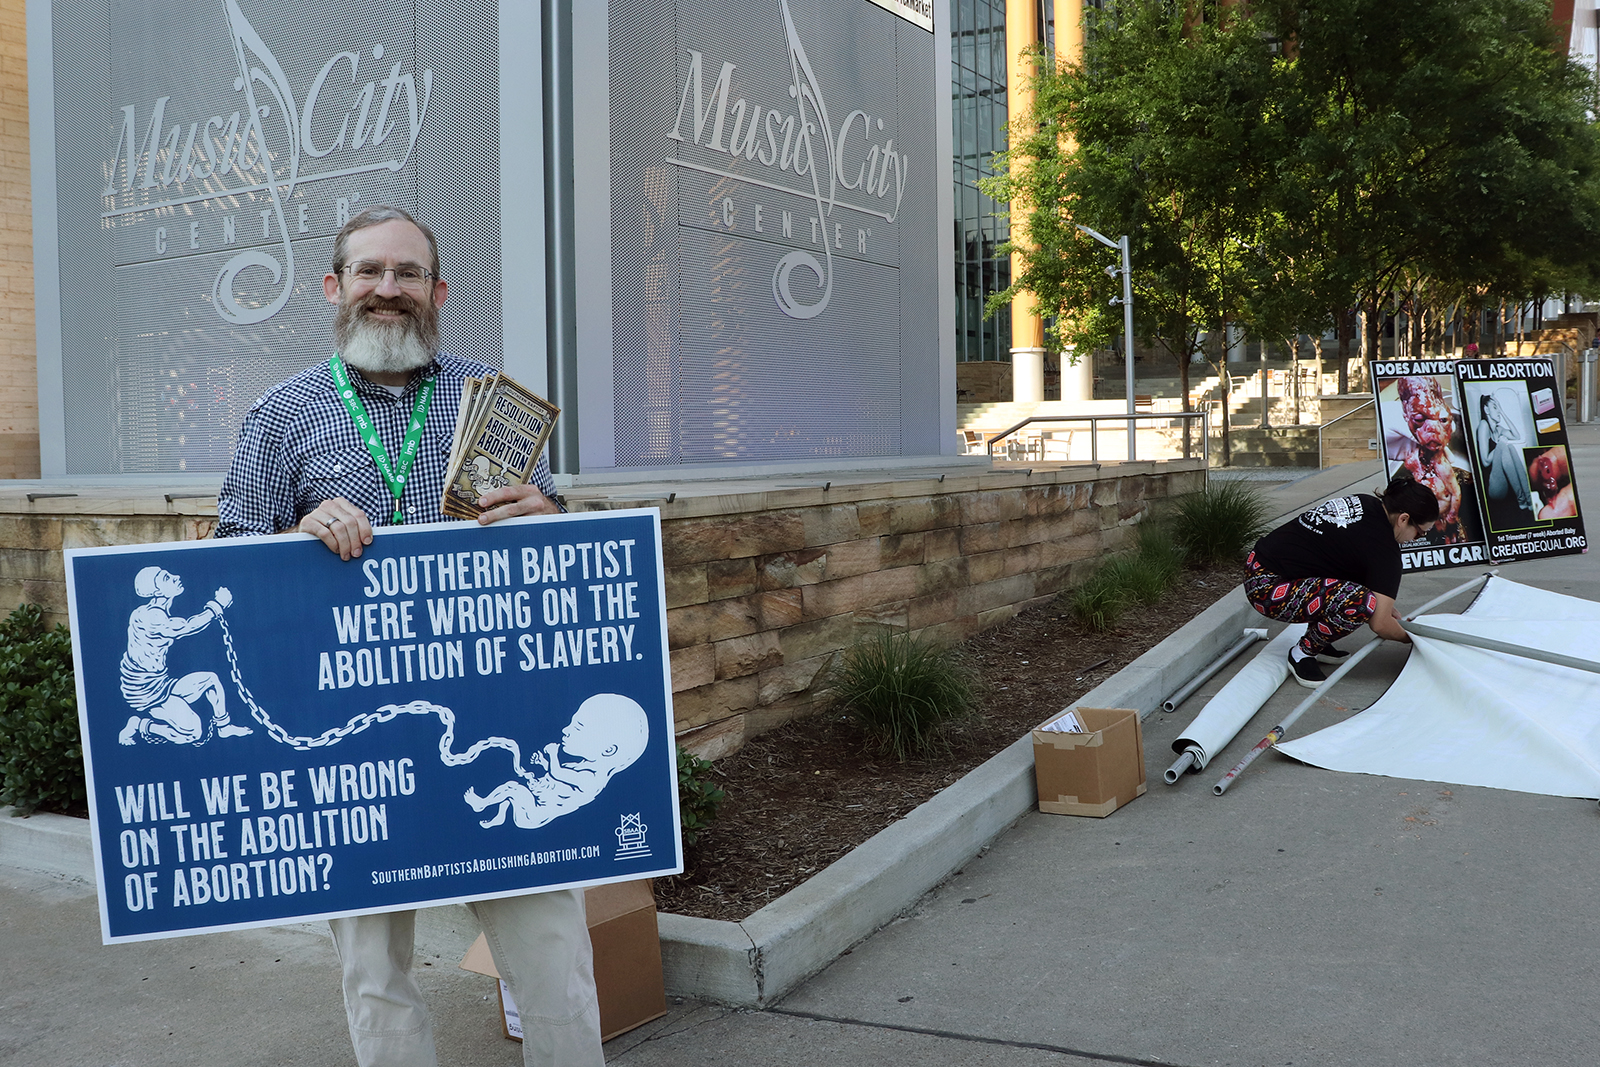 Pastor Clay Hall, of Oak Grove Baptist Church in Paducah, Kentucky, demonstrates against abortion and in favor of a resolution to abolish abortion outside the Music City Center, Wednesday, June 16, 2021, during the annual meeting of the Southern Baptist Convention. RNS photo by Adelle M. Banks